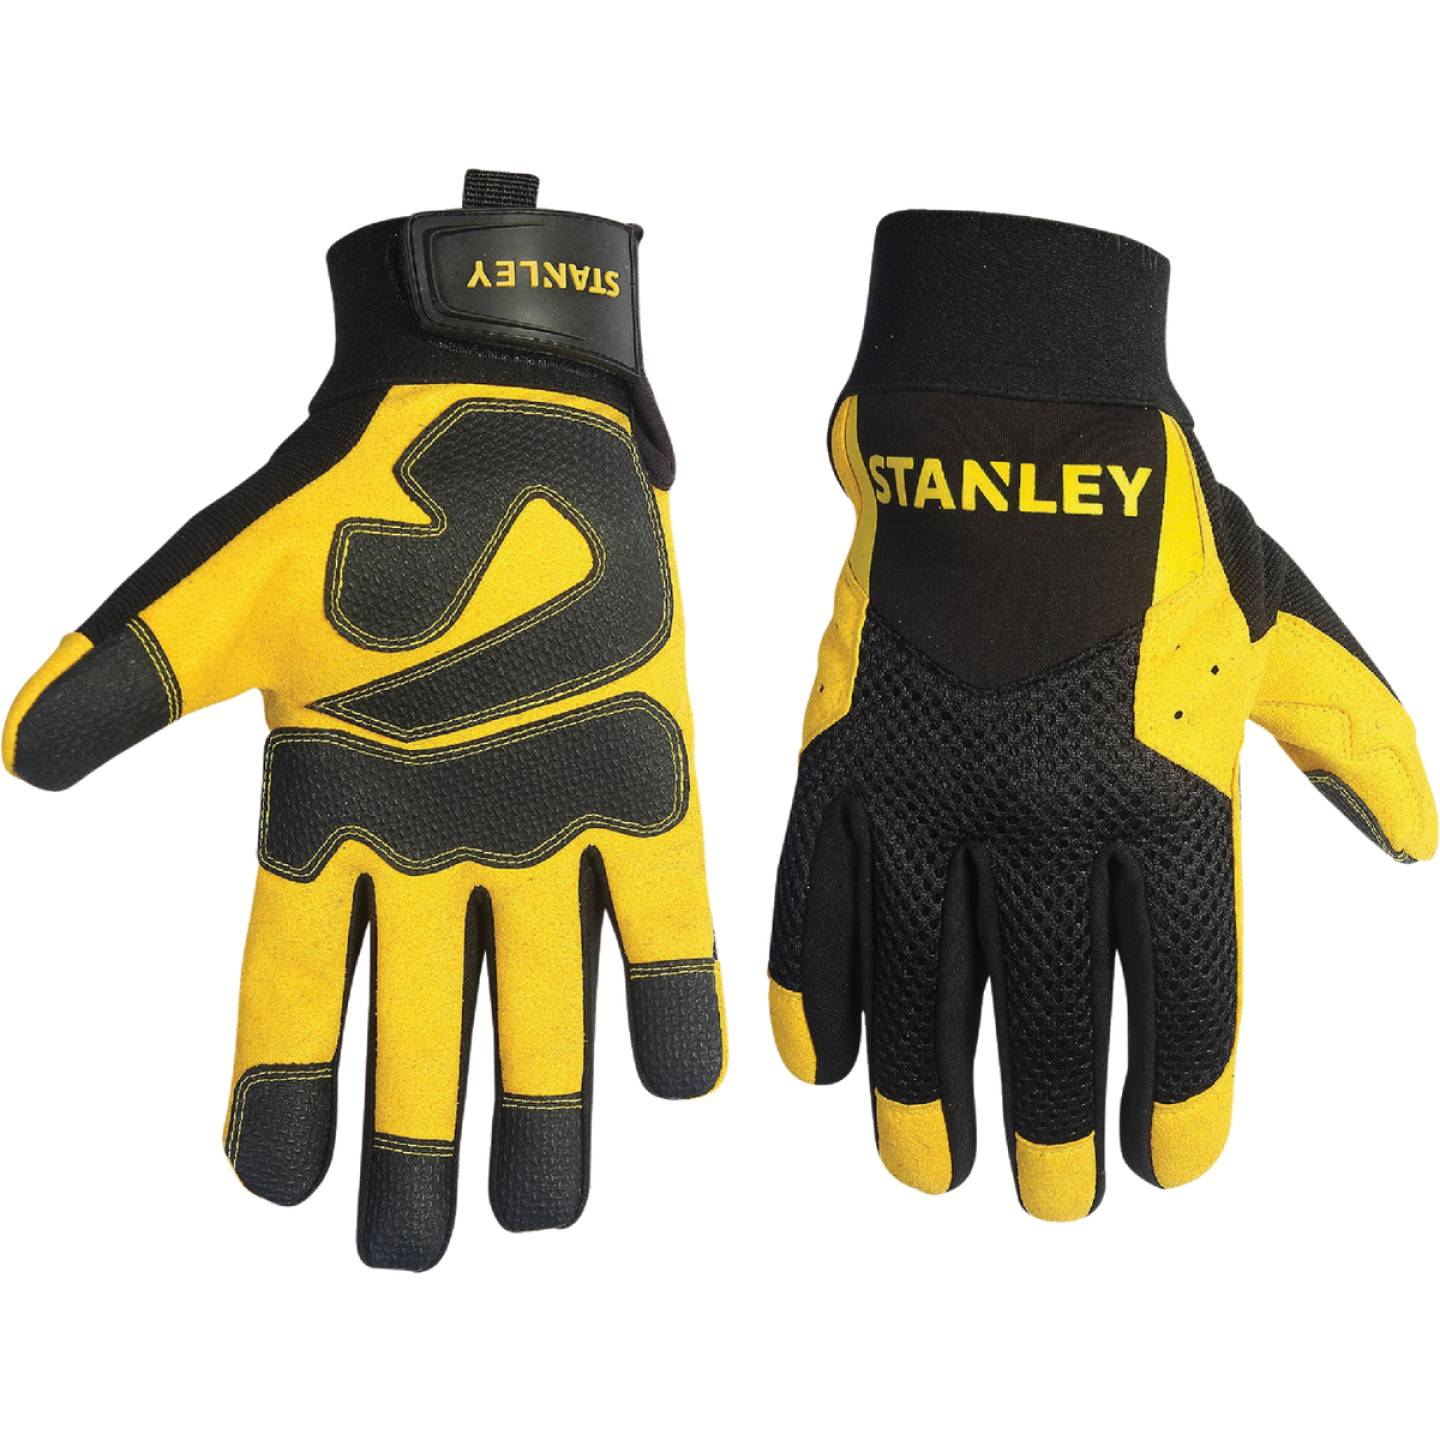 Stanley Men's Large Synthetic Leather High Performance Glove Image 1